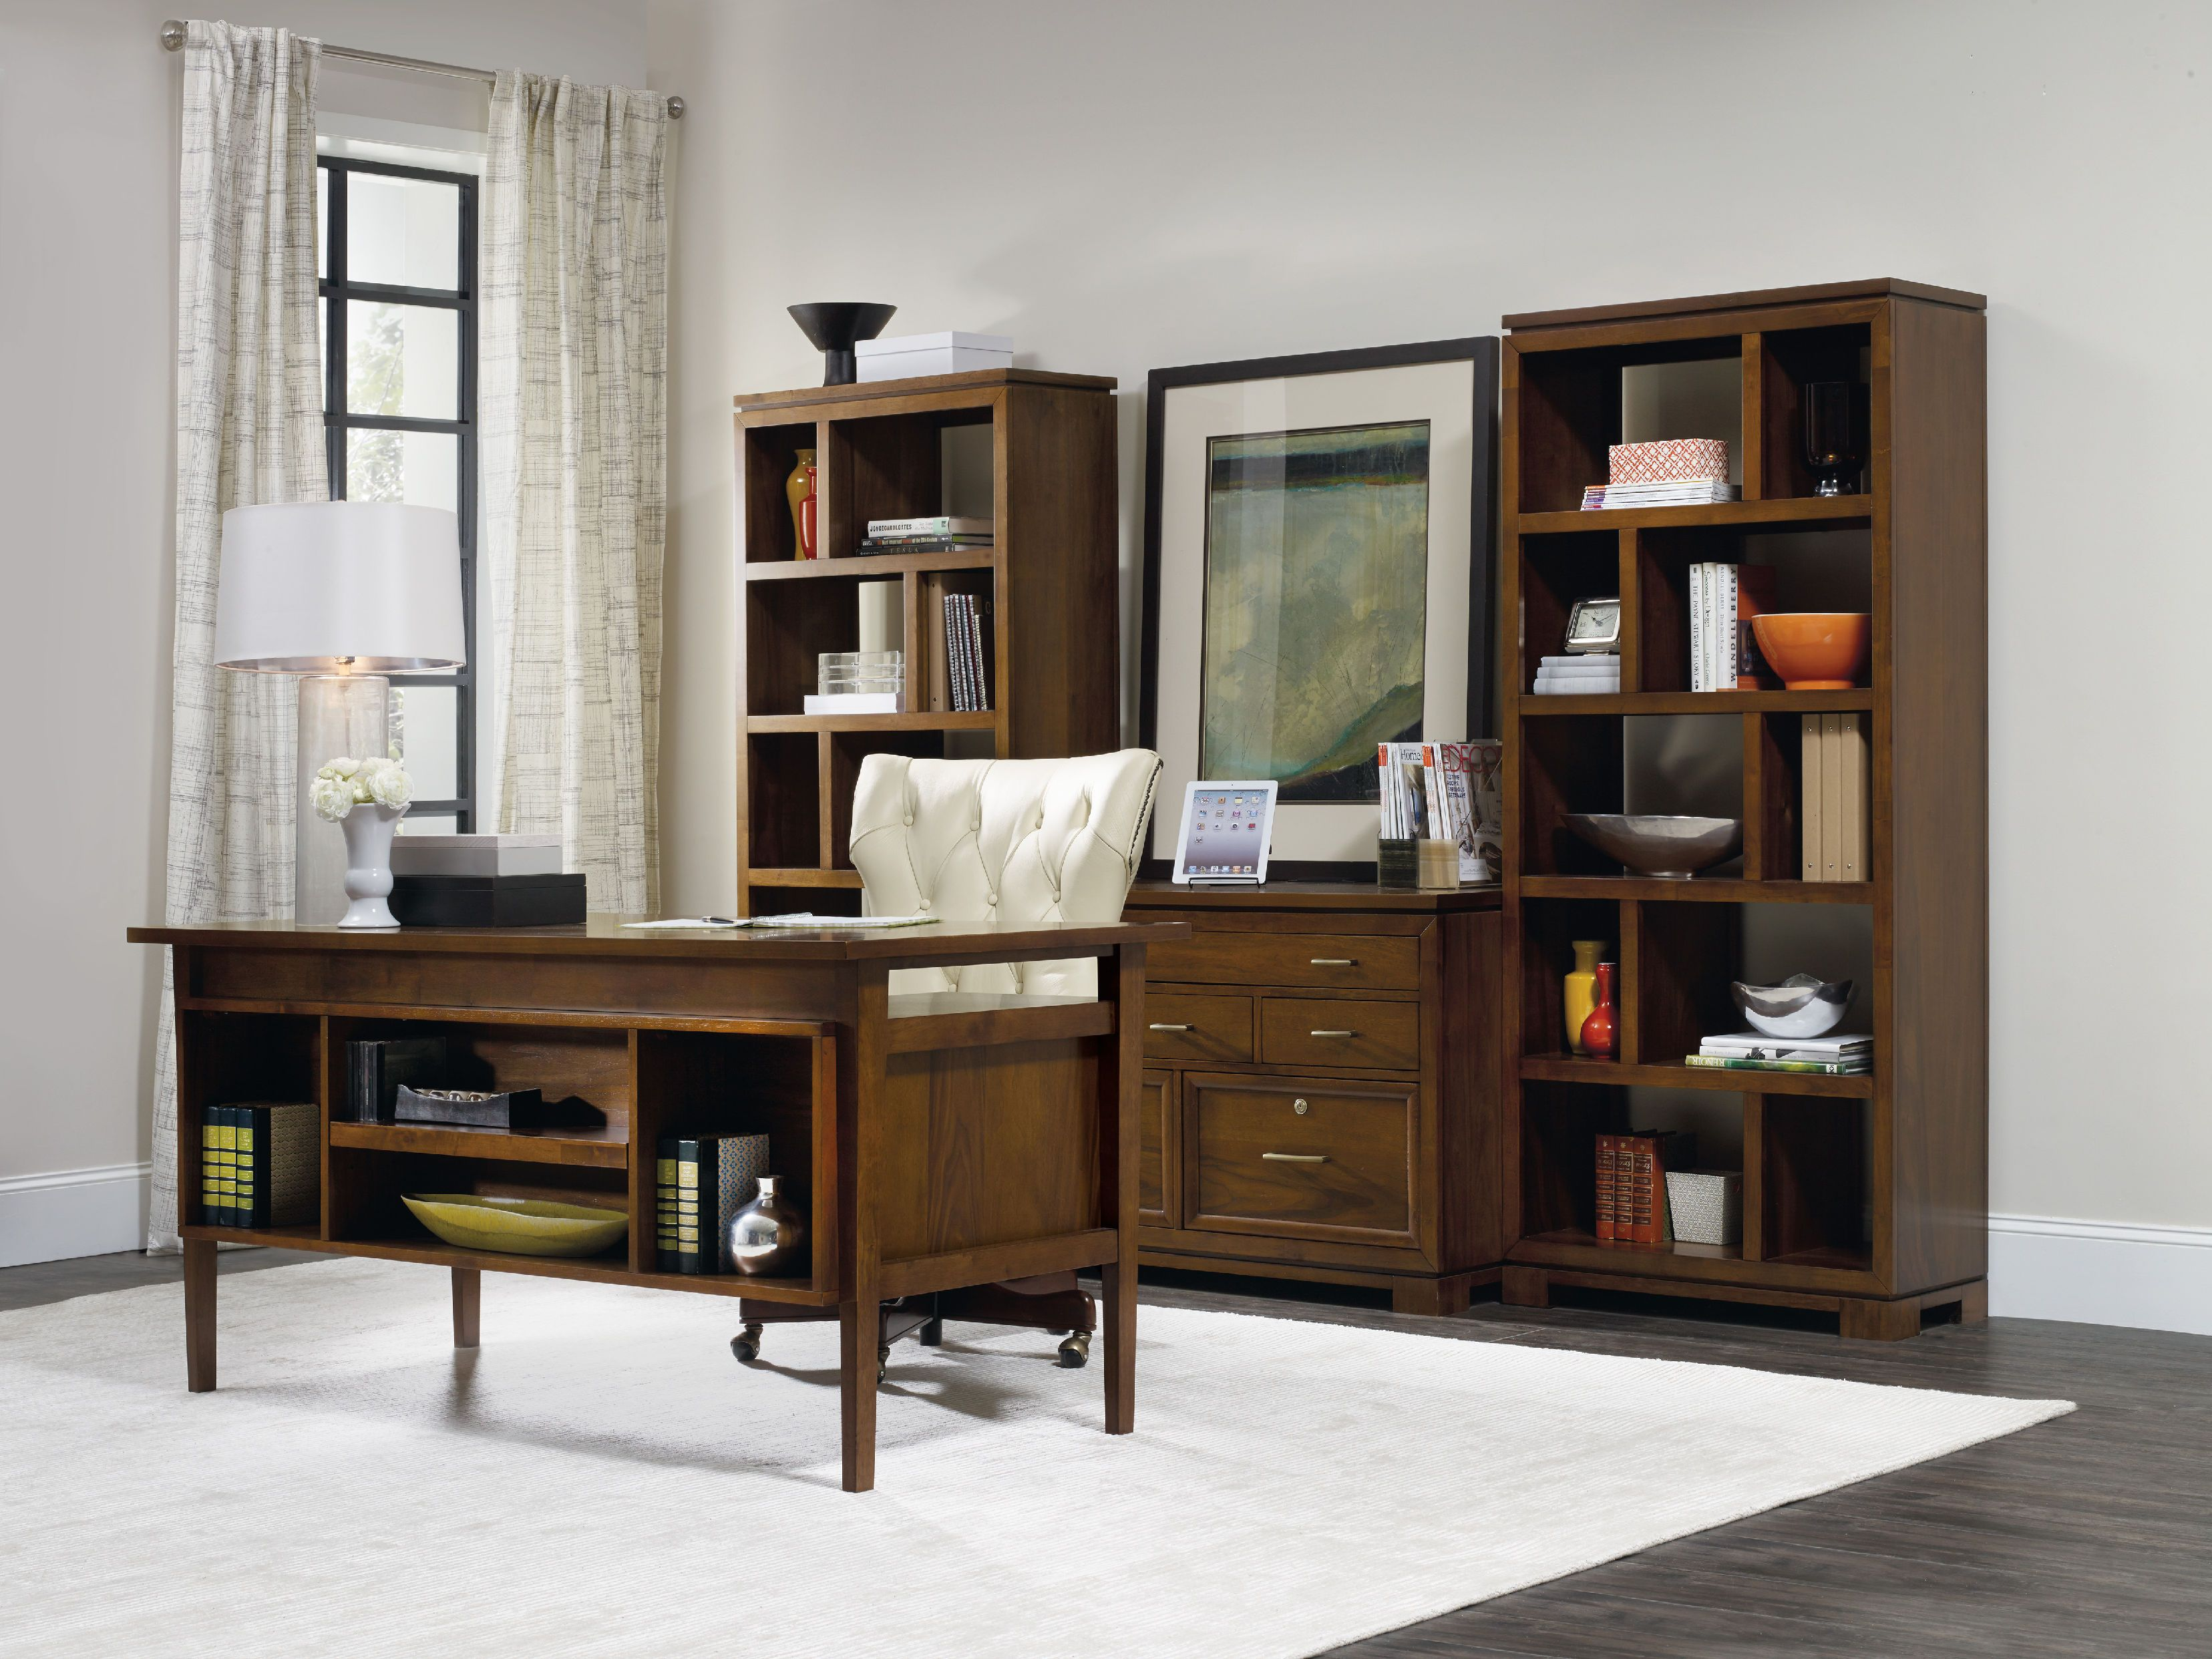 Hooker Furniture Home Office Viewpoint Desk   Hendricks Home Furnishings    Virden, Springfield And Taylorville, IL